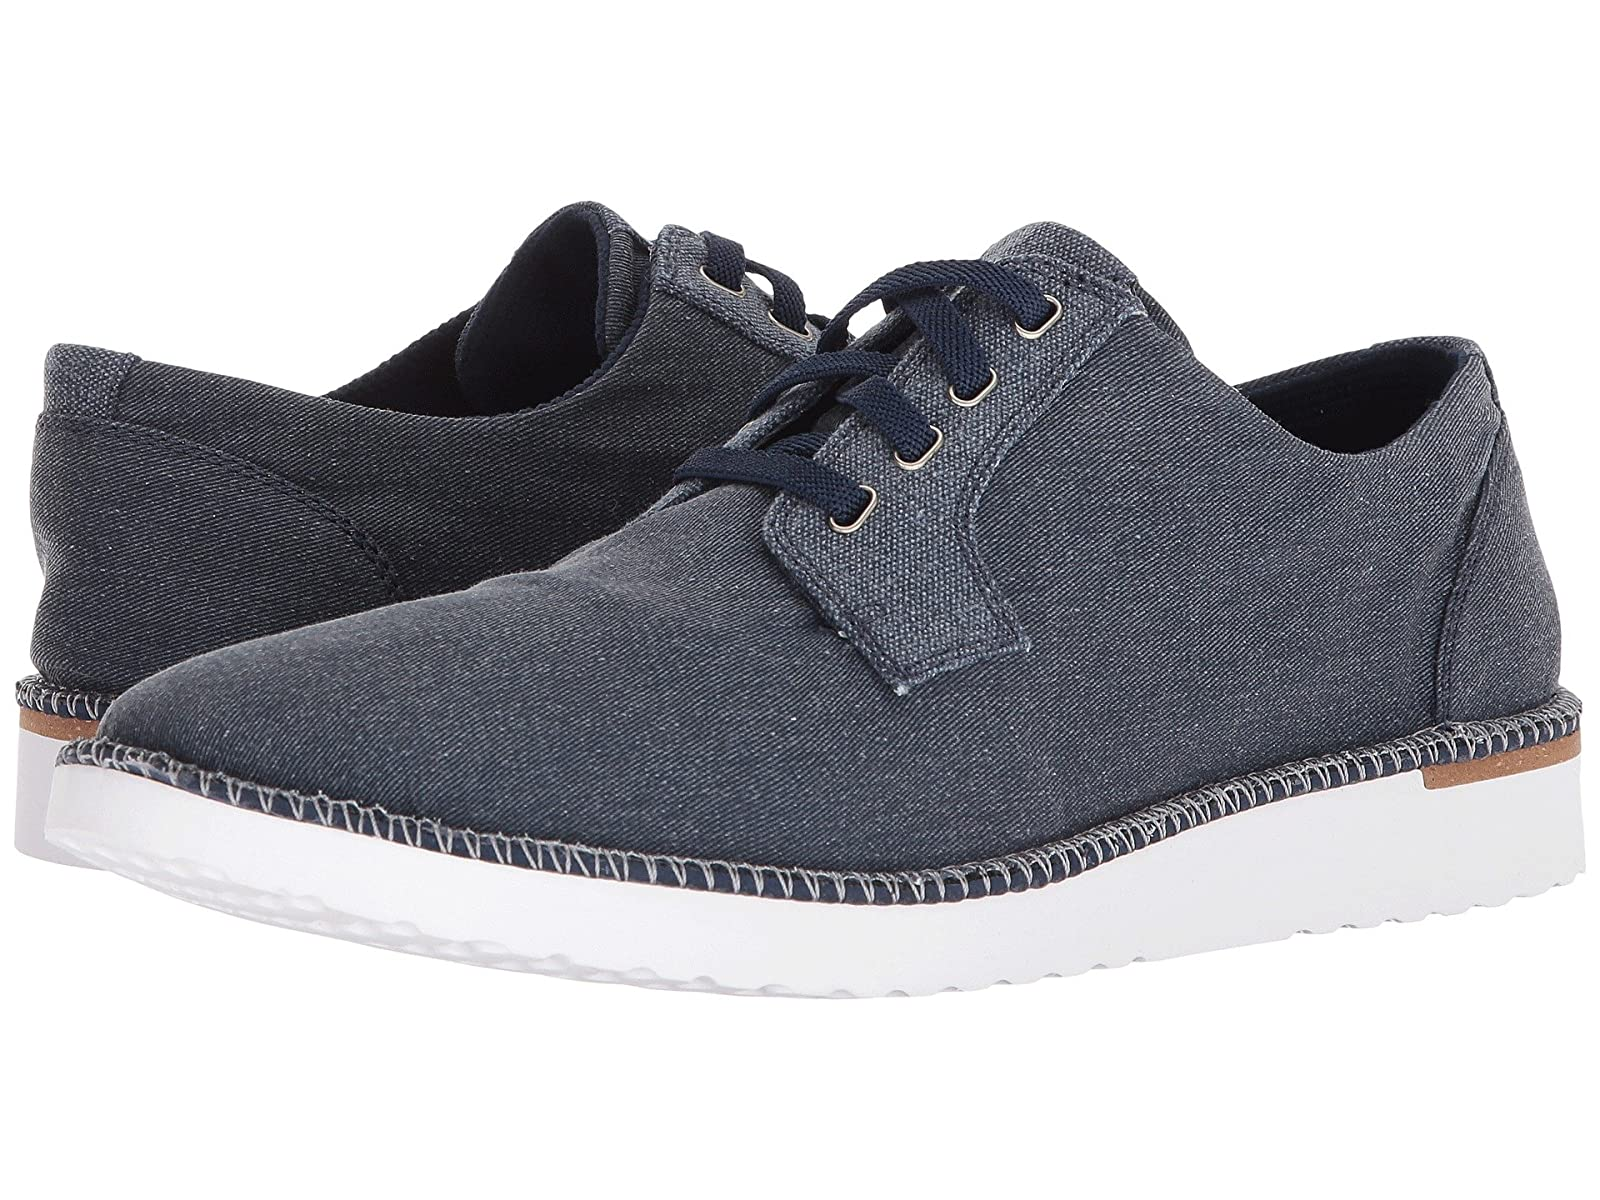 Sperry Camden Oxford CanvasAtmospheric grades have affordable shoes